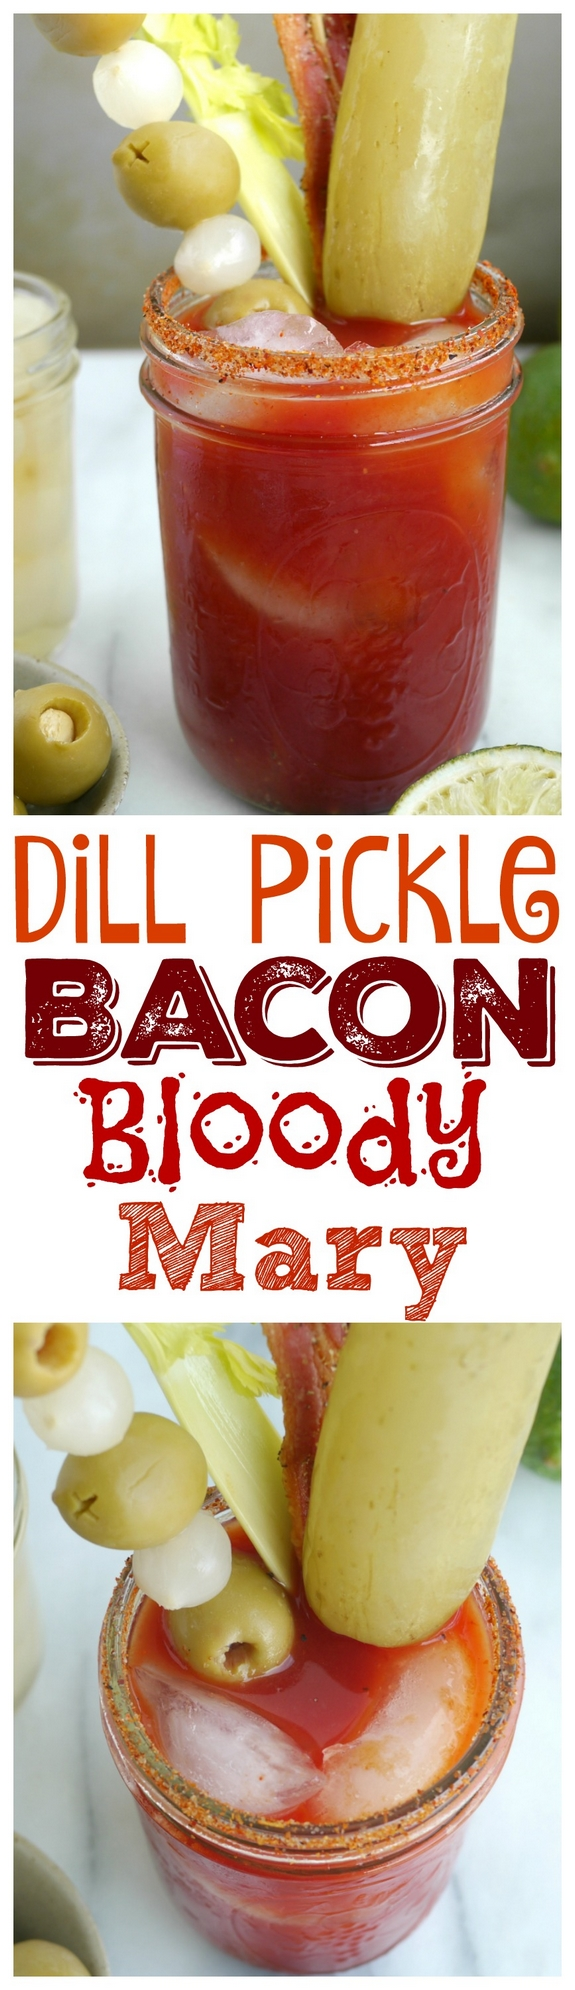 Dill Pickle Bacon Bloody Mary